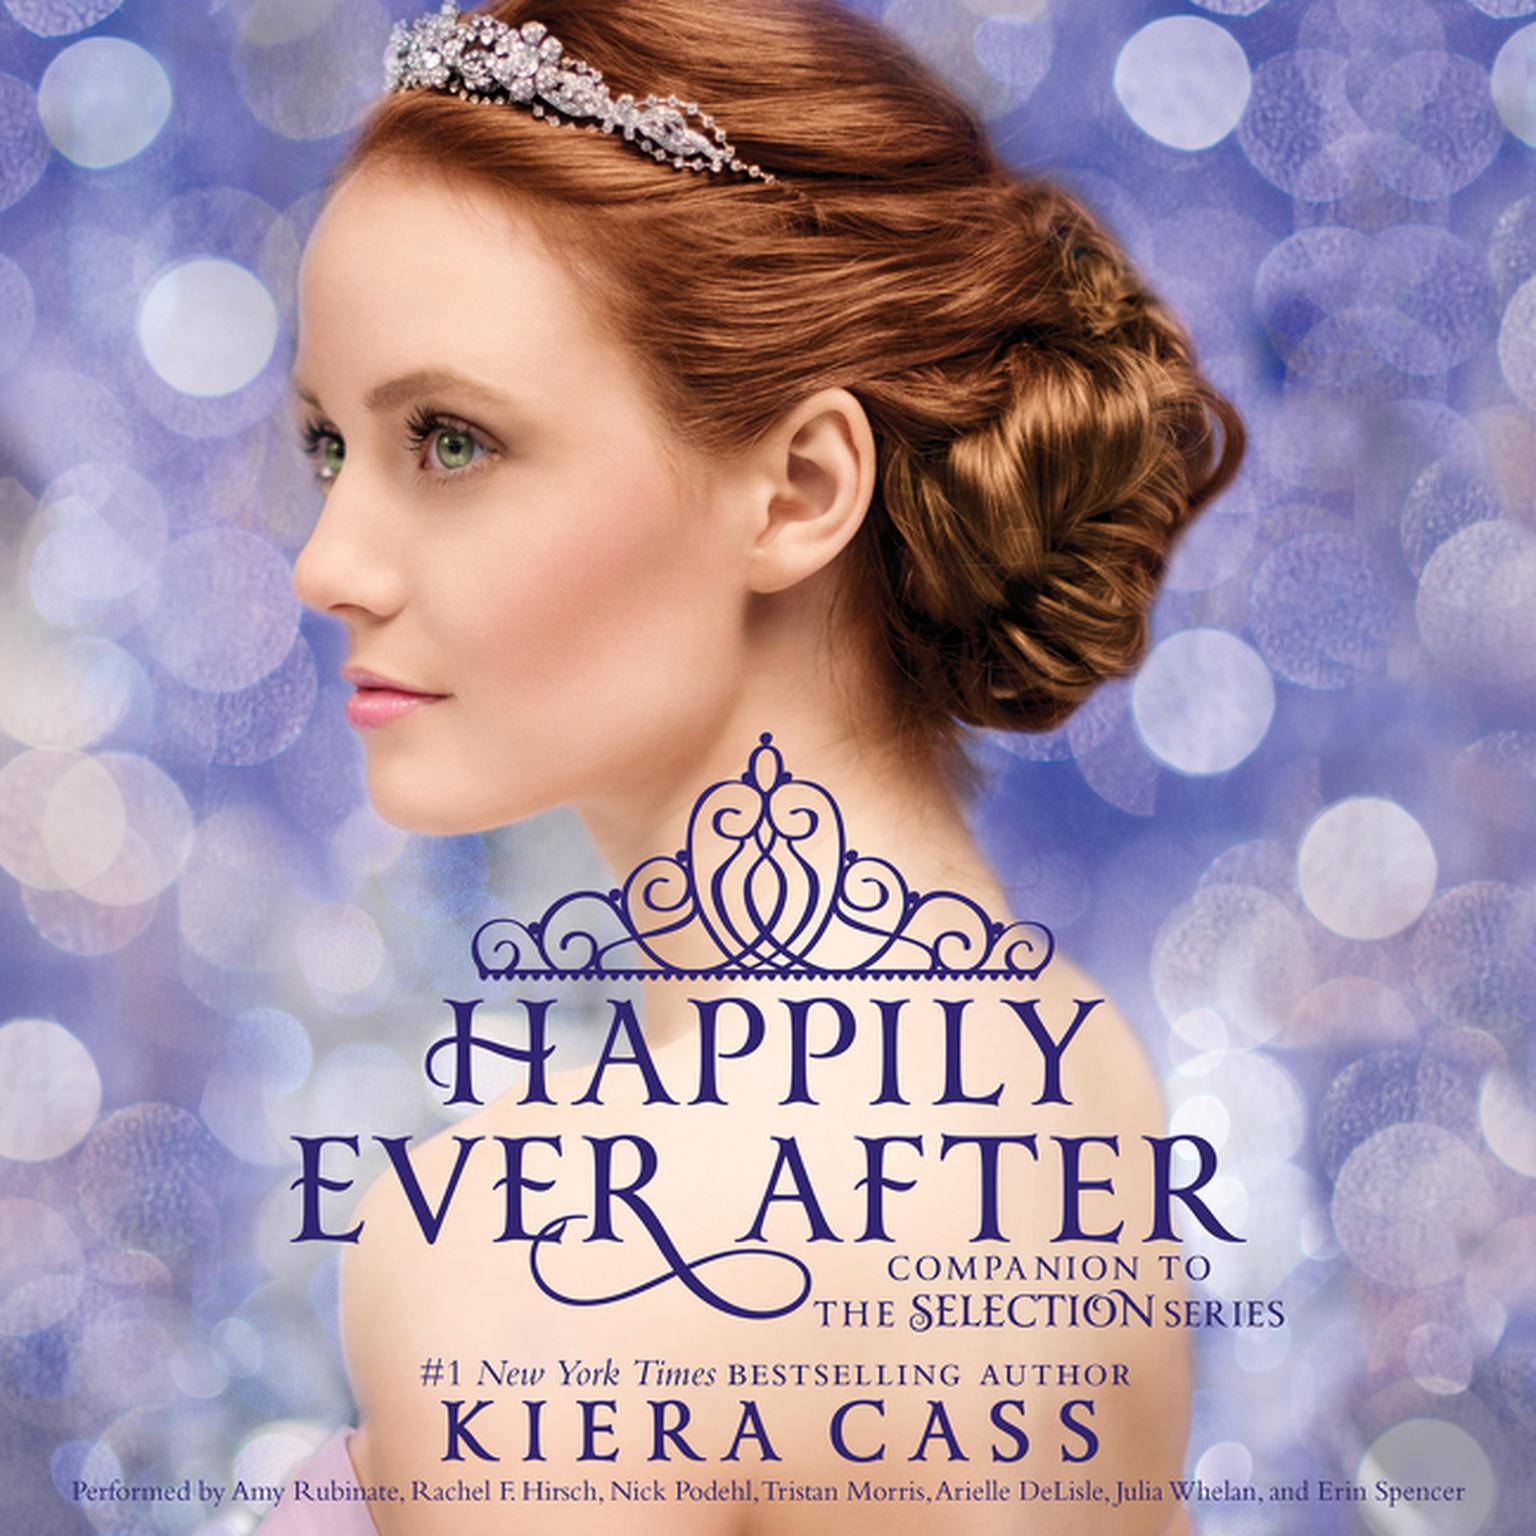 Happily Ever After: Companion to the Selection Series: Companion to the Selection Series Audiobook, by Kiera Cass